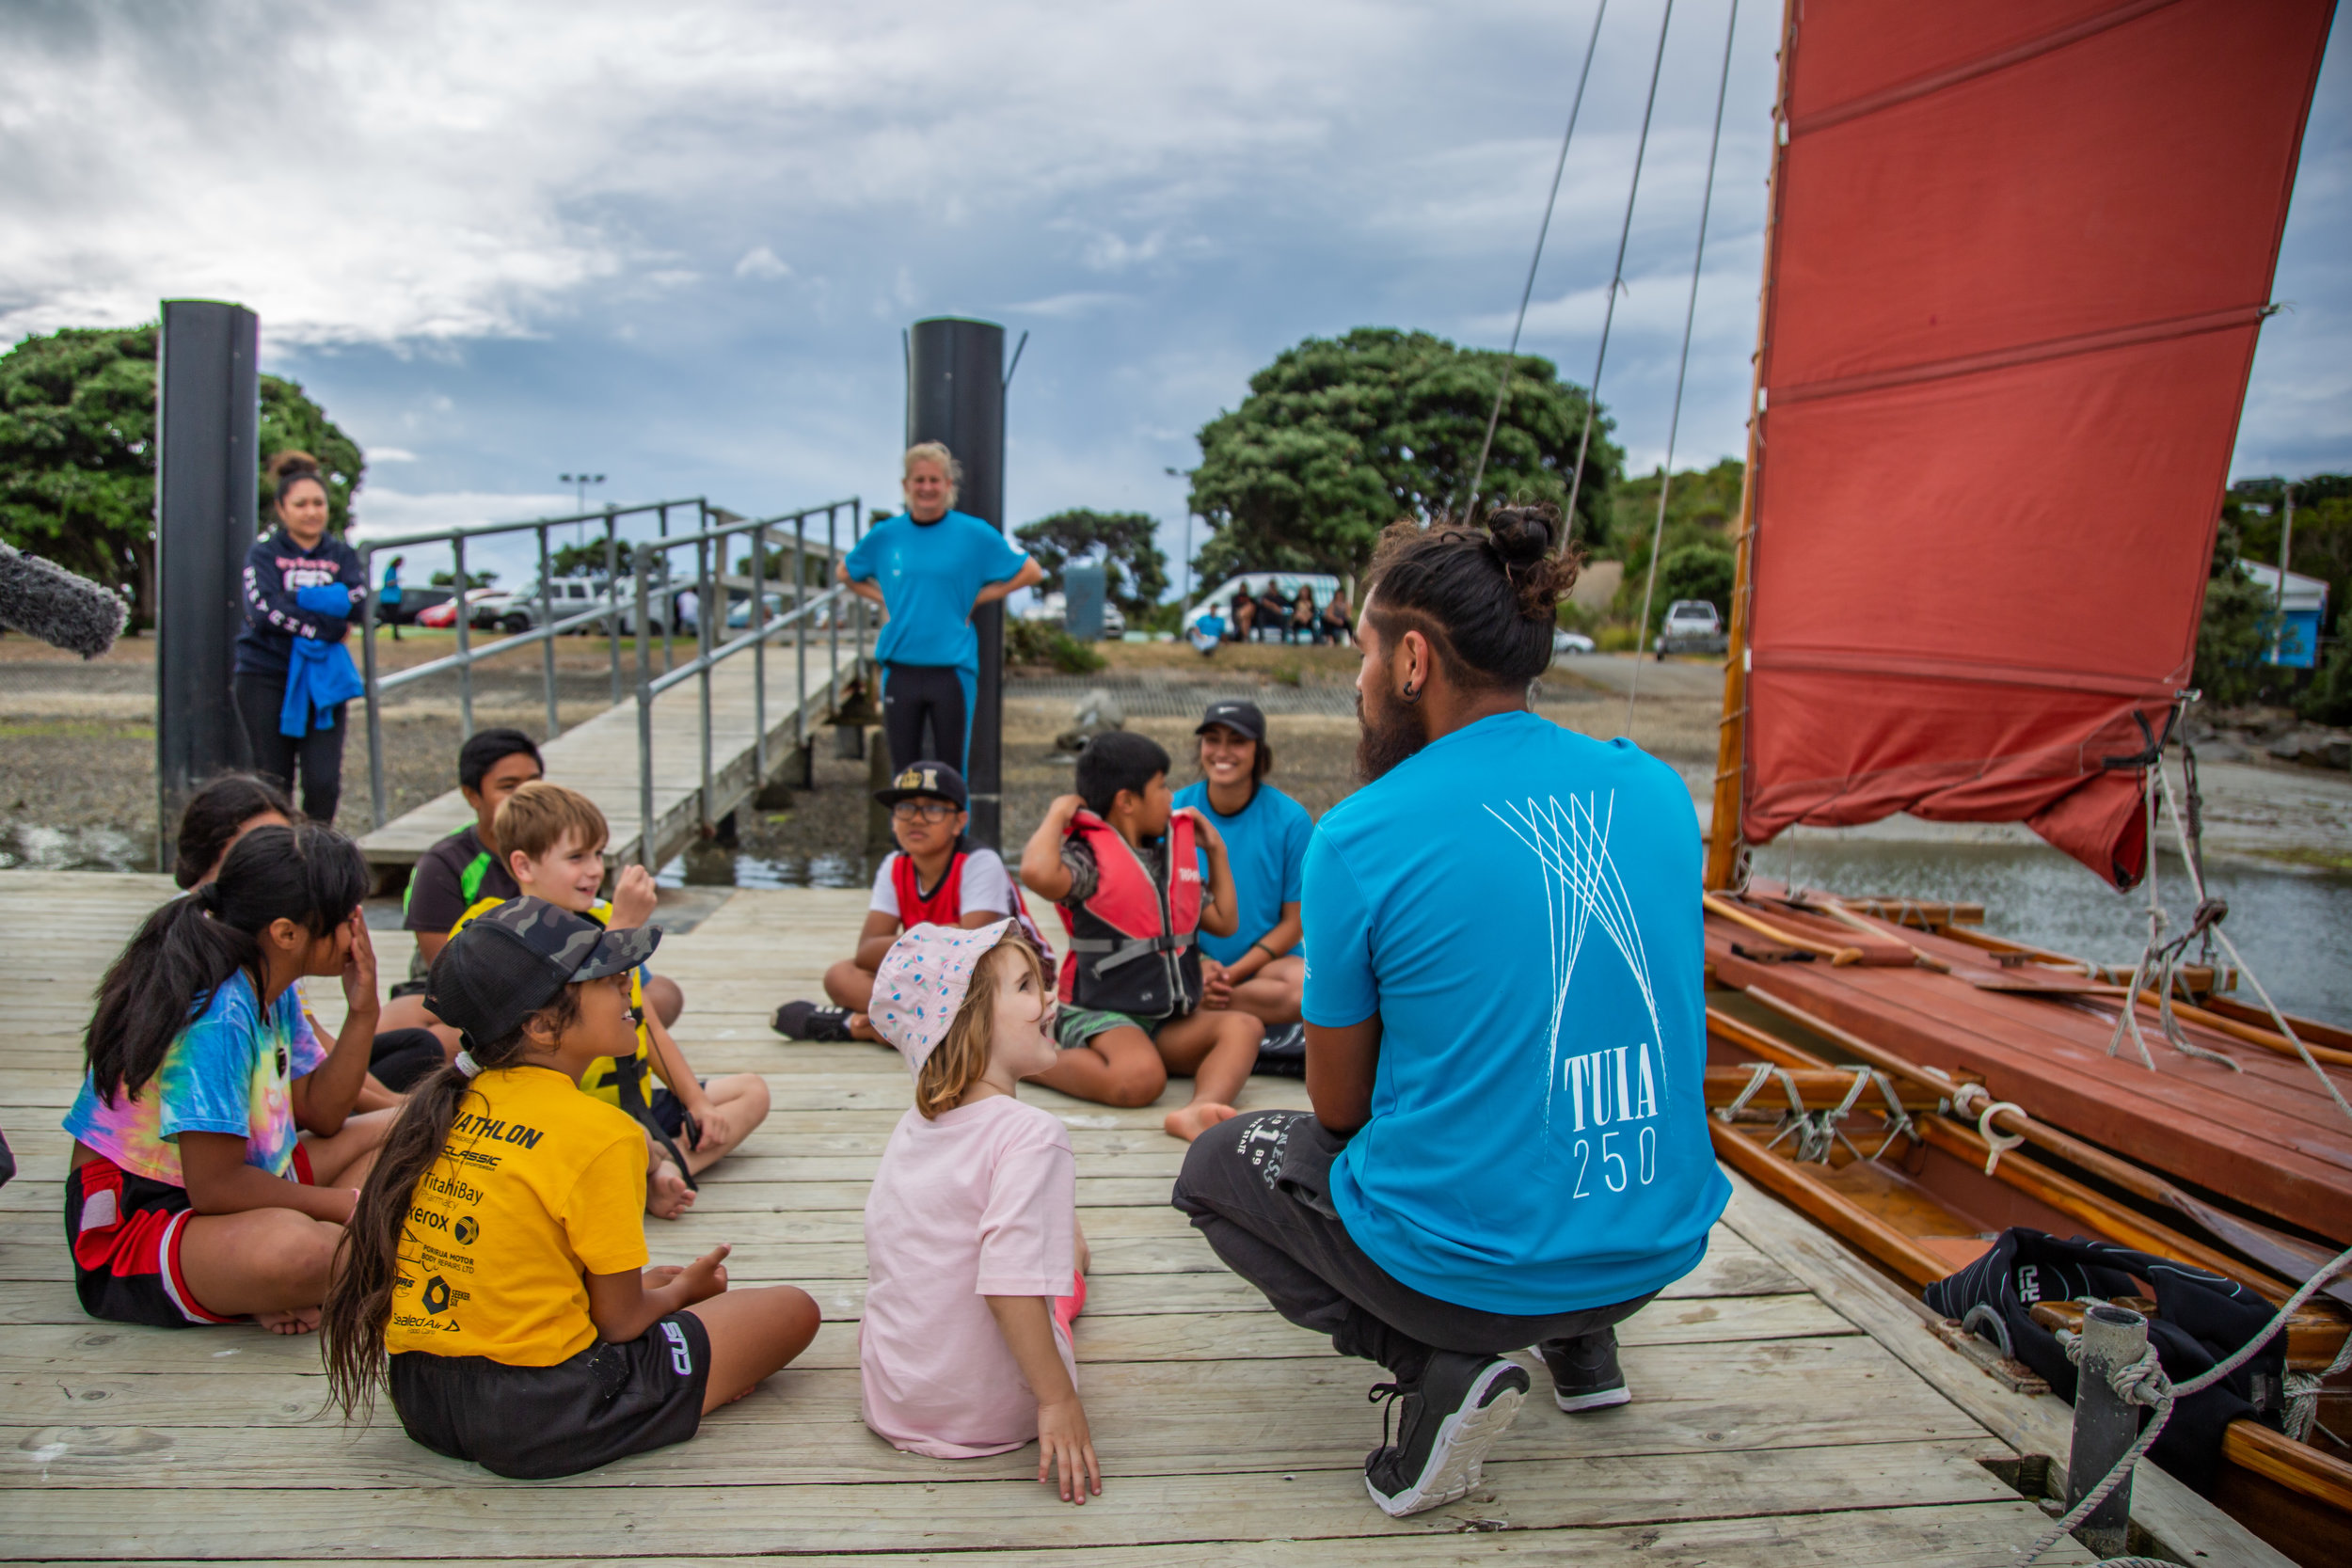 Children learn about Tuia 250 during the visit of the waka Pumaiterangi to the Porirua Harbour in February 2019. Image supplied by the Ministry of Culture and Heritage.